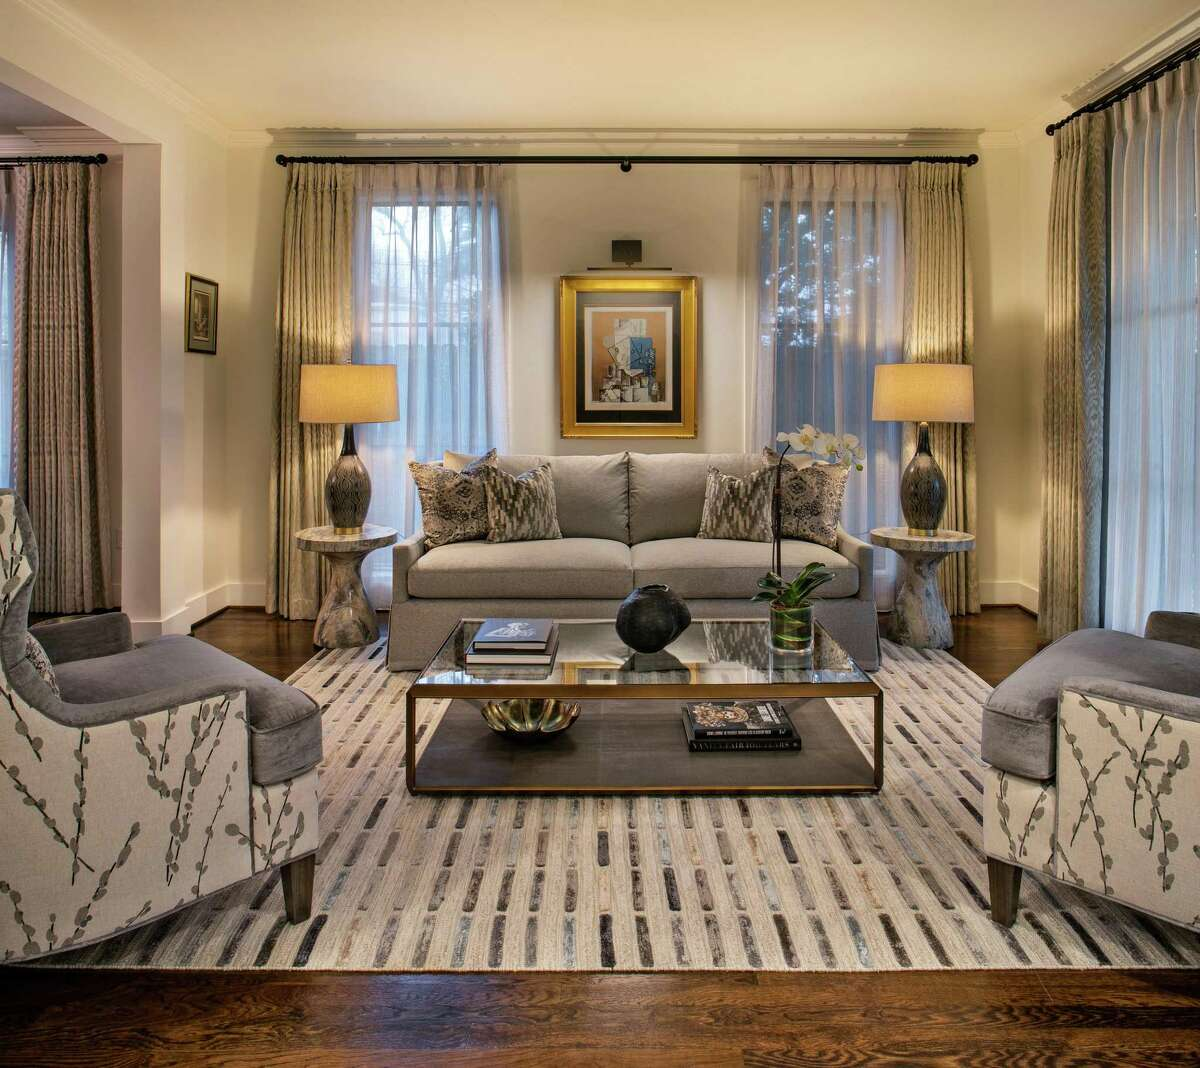 Kim and Andreas Tolias embarked on a whole-home renovation that turned their little-used living room into a showplace for entertaining. Their interior designer was Fabrice Plantard Decoration.